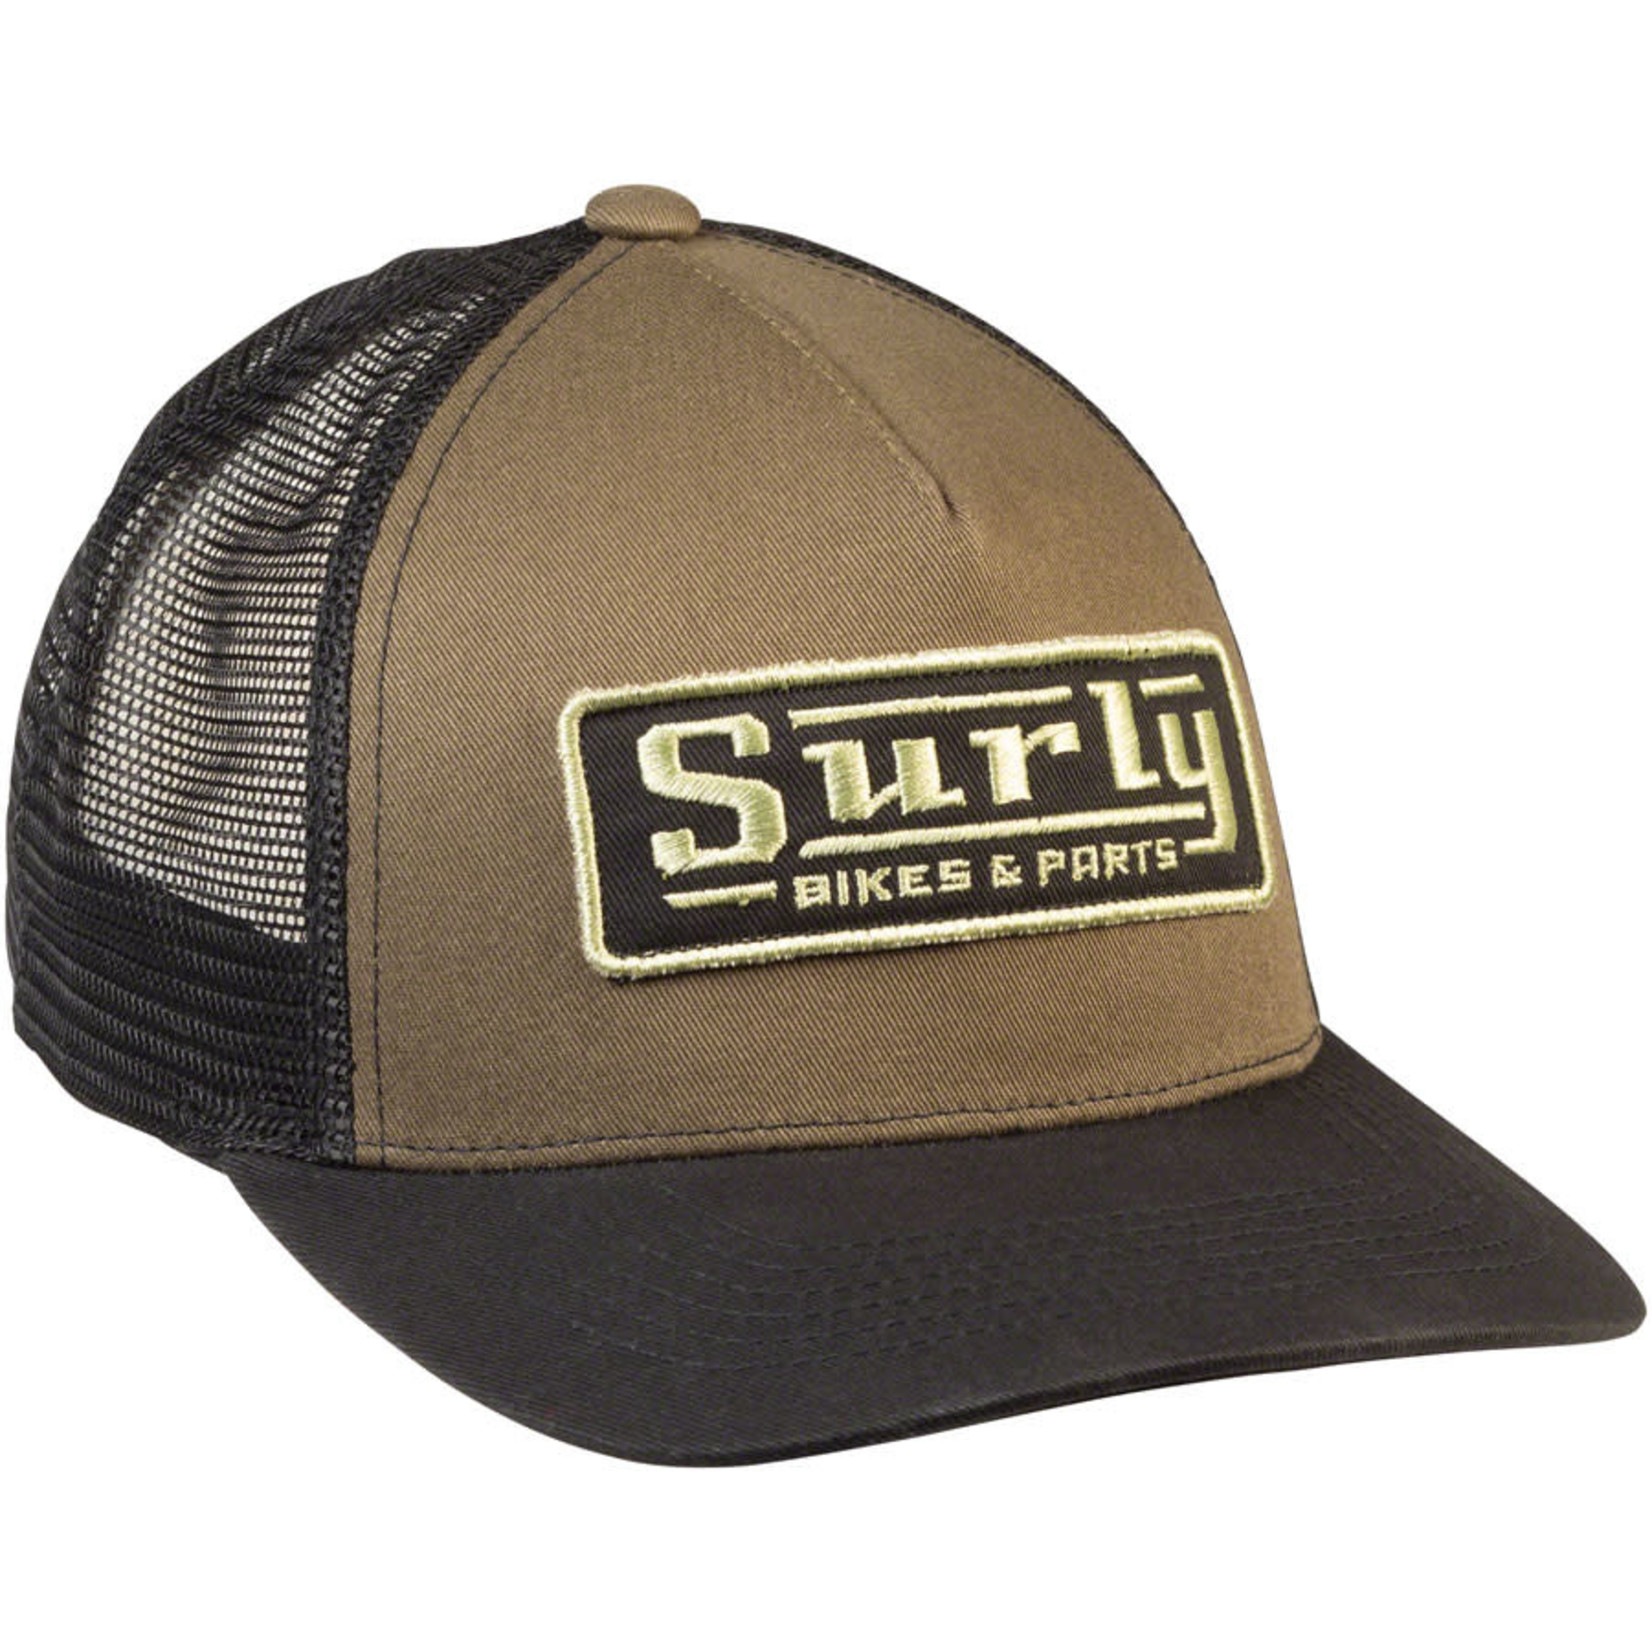 Surly Surly Assistant Executive Director Trucker Hat - Green , Black, One Size